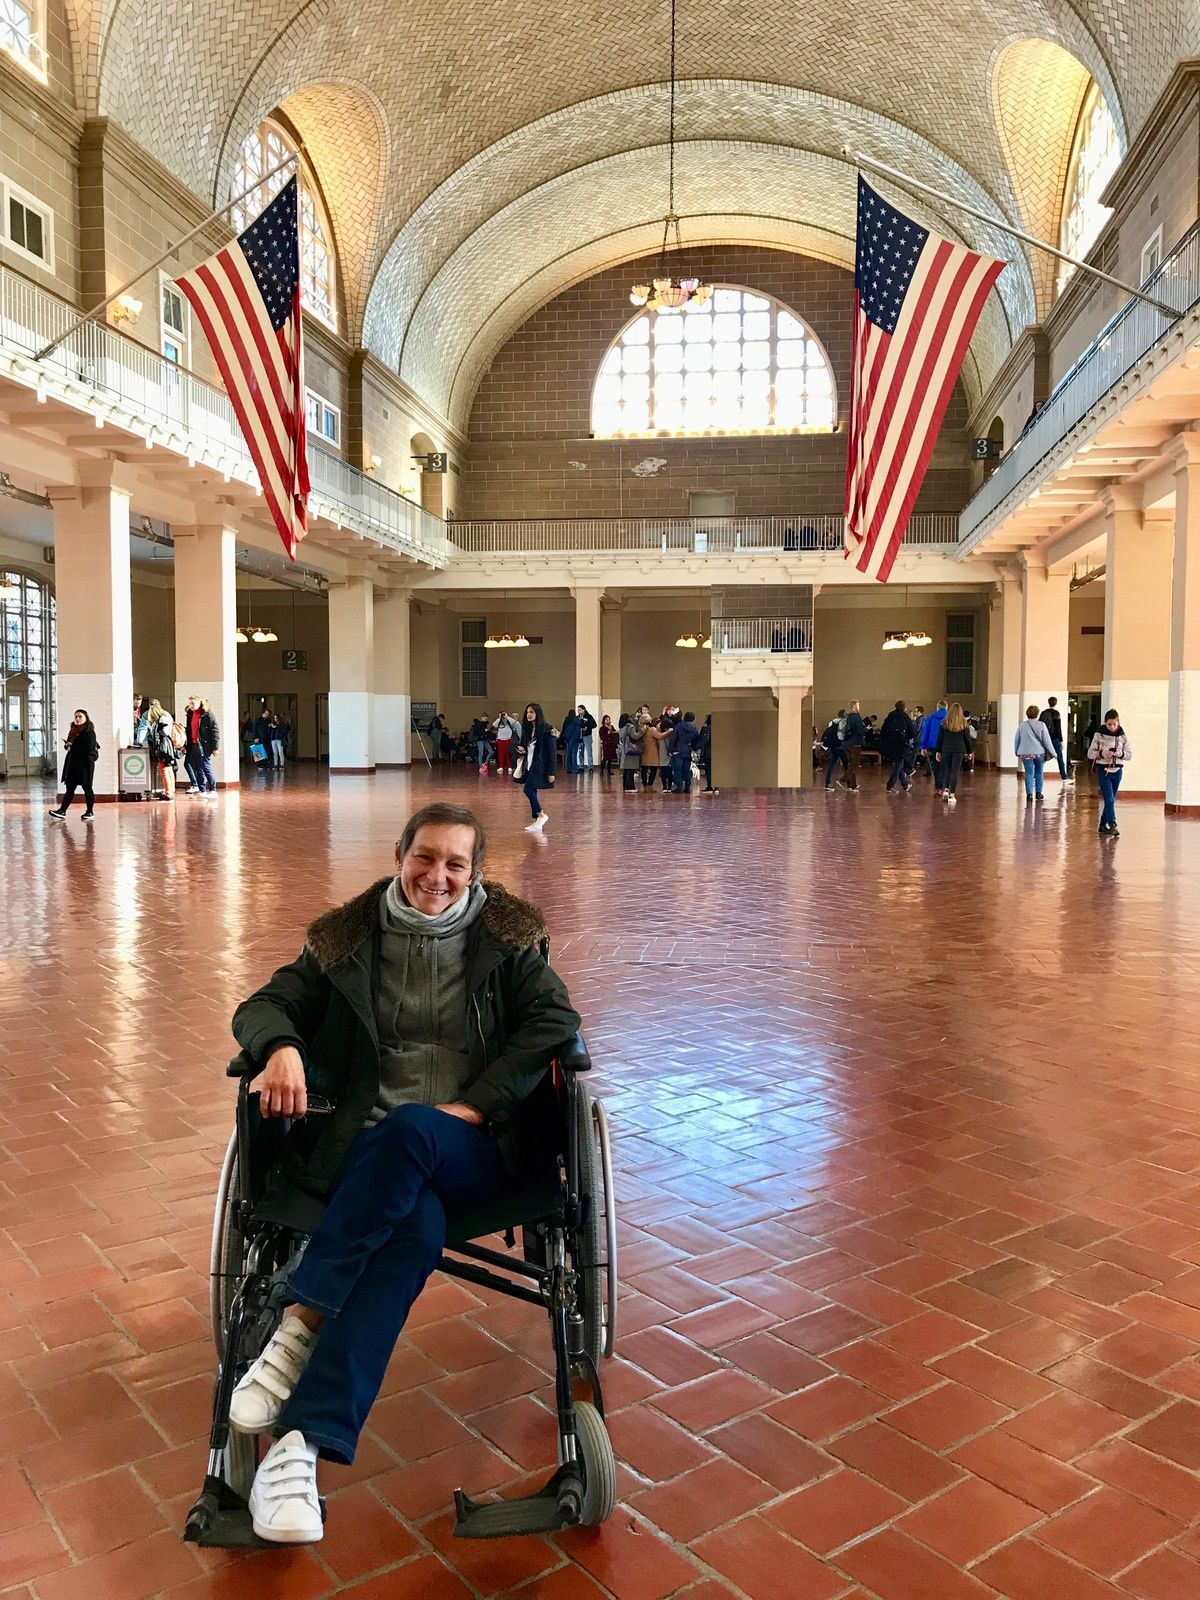 Ellis Island, New York - Octobre 2018